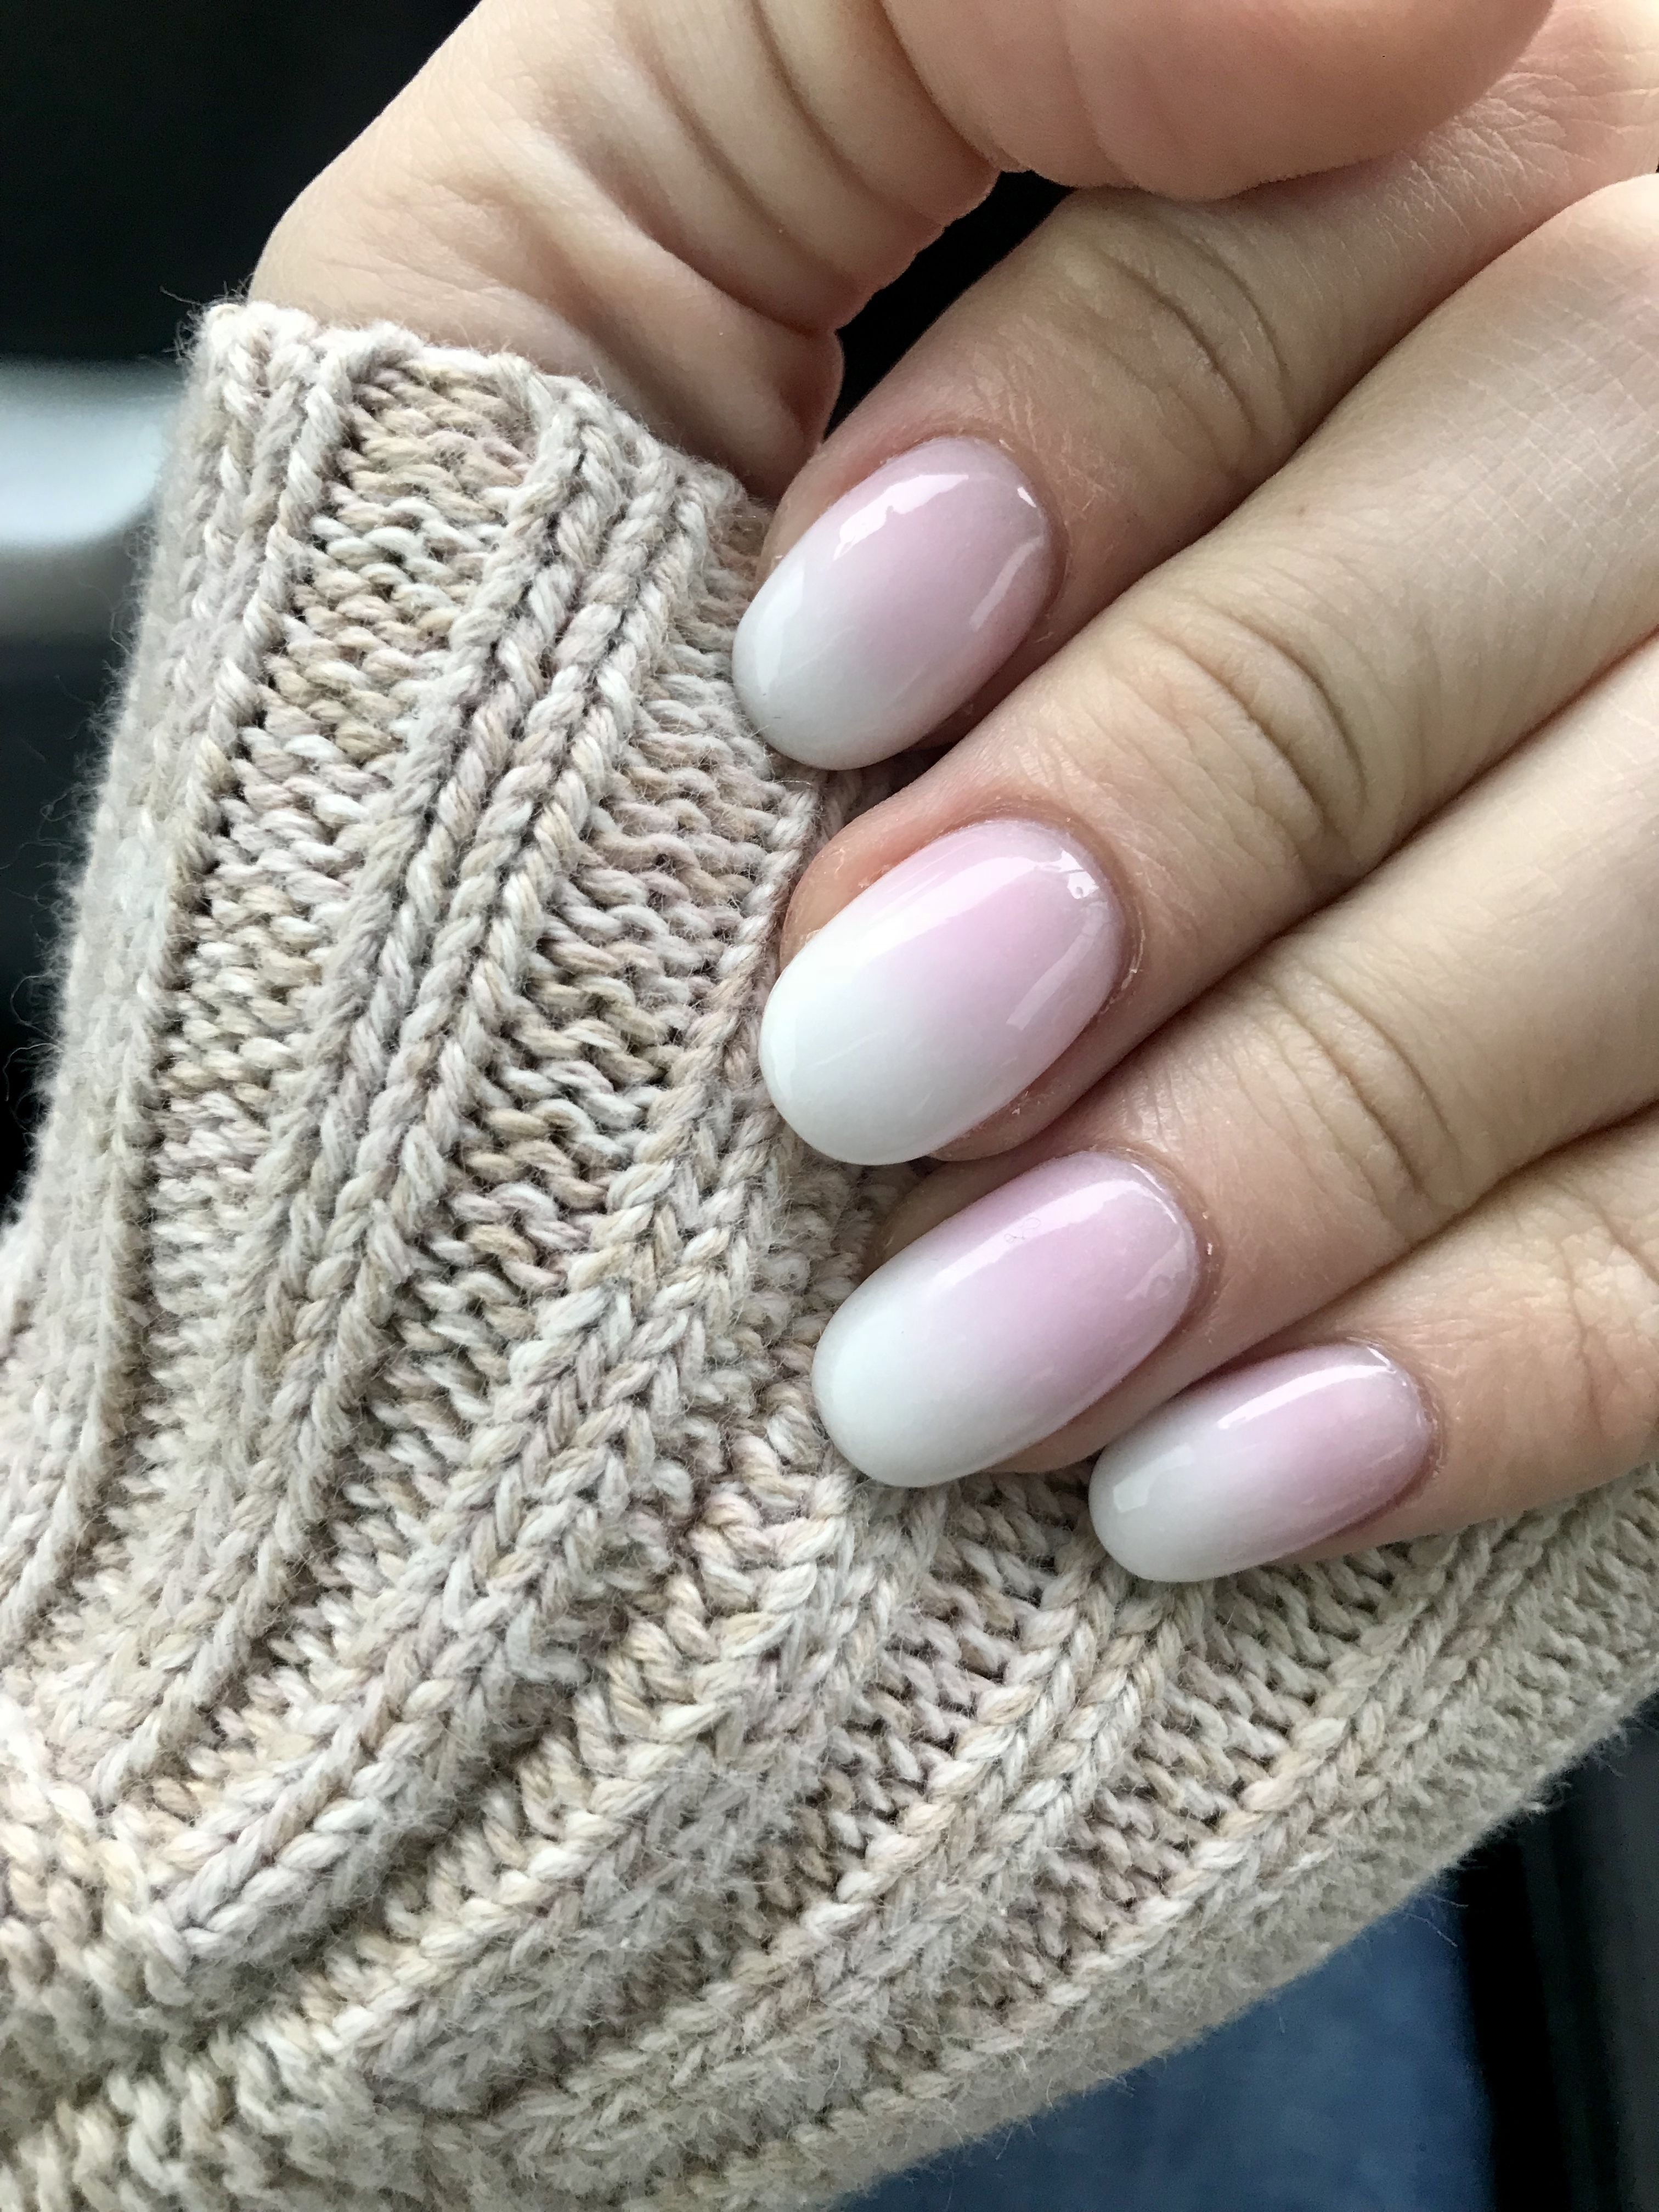 Pink And White Ombre Oval Acrylic Nails Bestsummernails Acrylic Nails Stiletto Oval Acrylic Nails Ombre Acrylic Nails